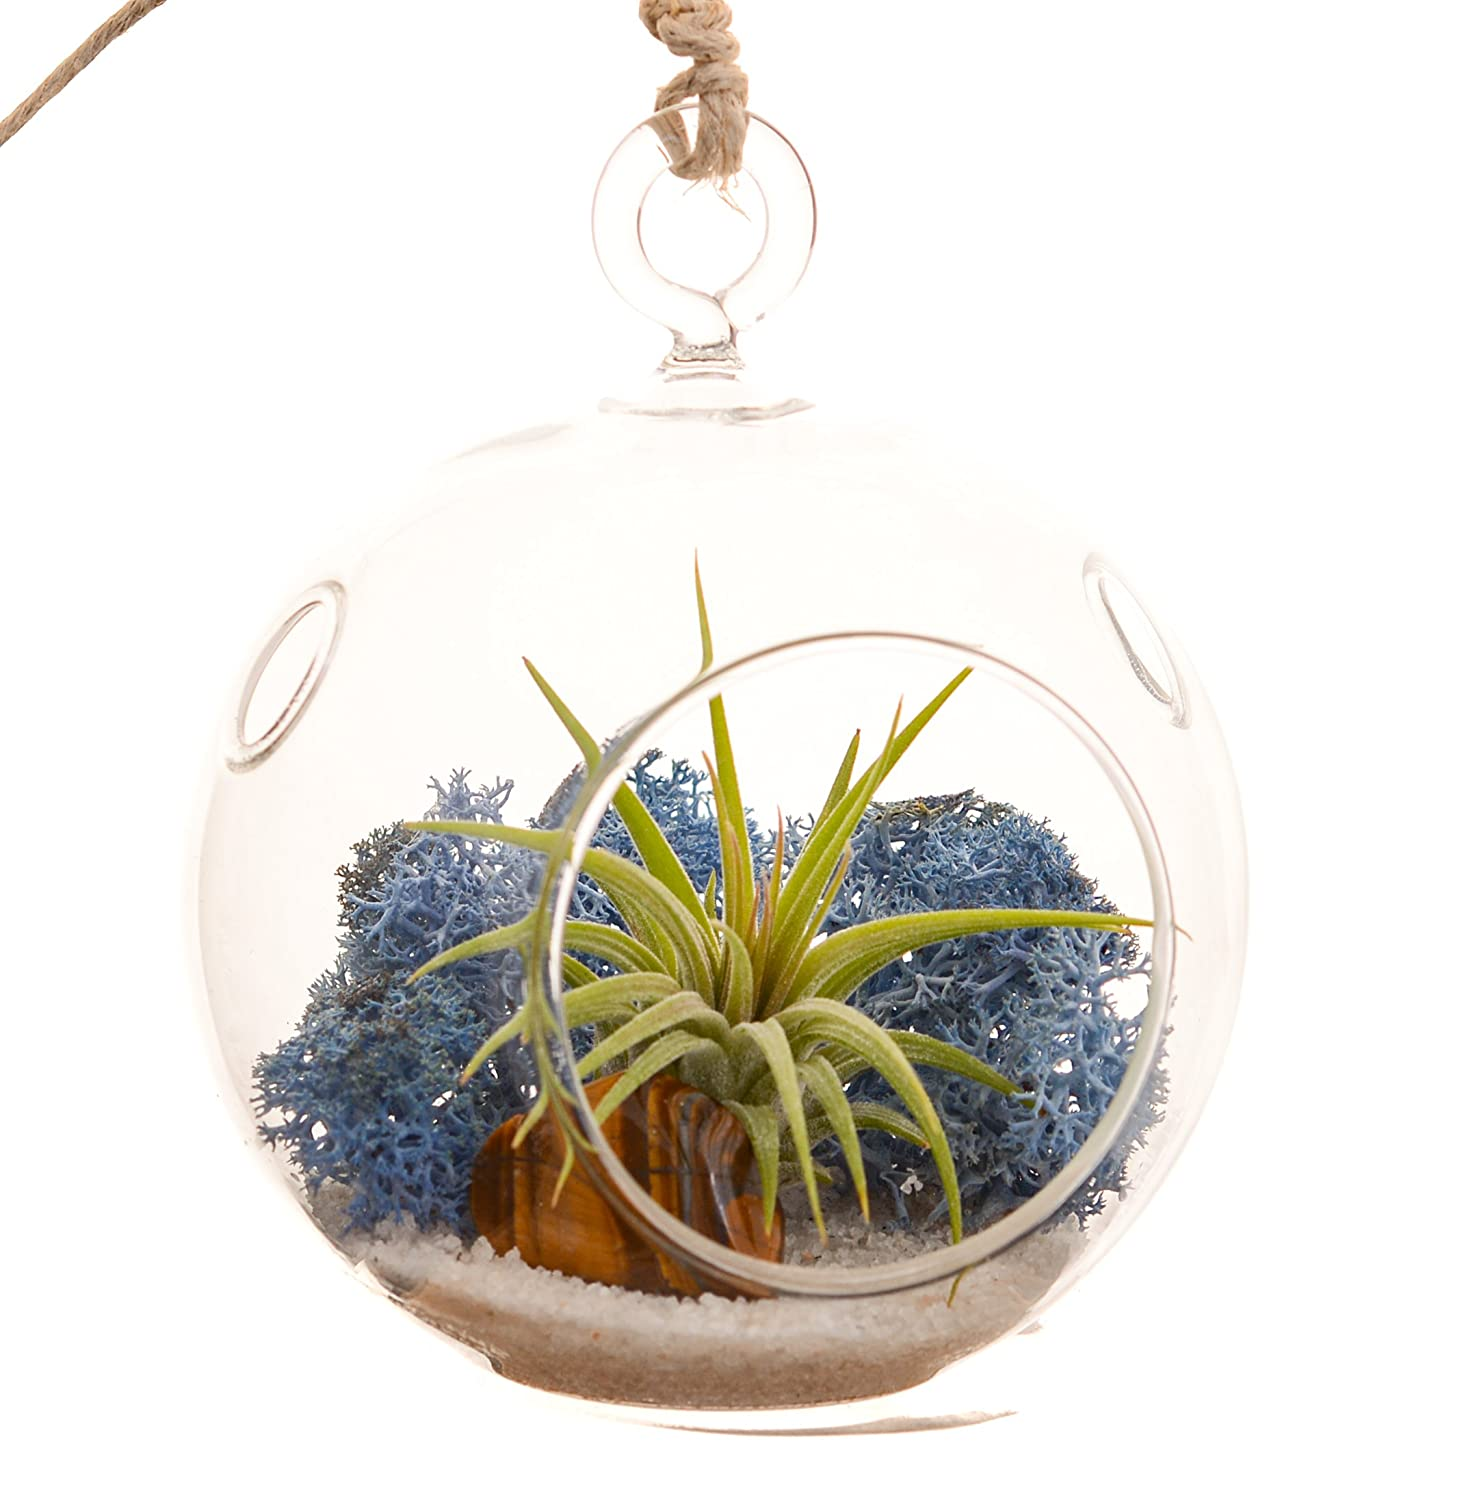 Bliss Gardens Mini Air Plant Terrarium Kit with 3 Round Glass Blue Moss Sand Tiger s Eye Stone